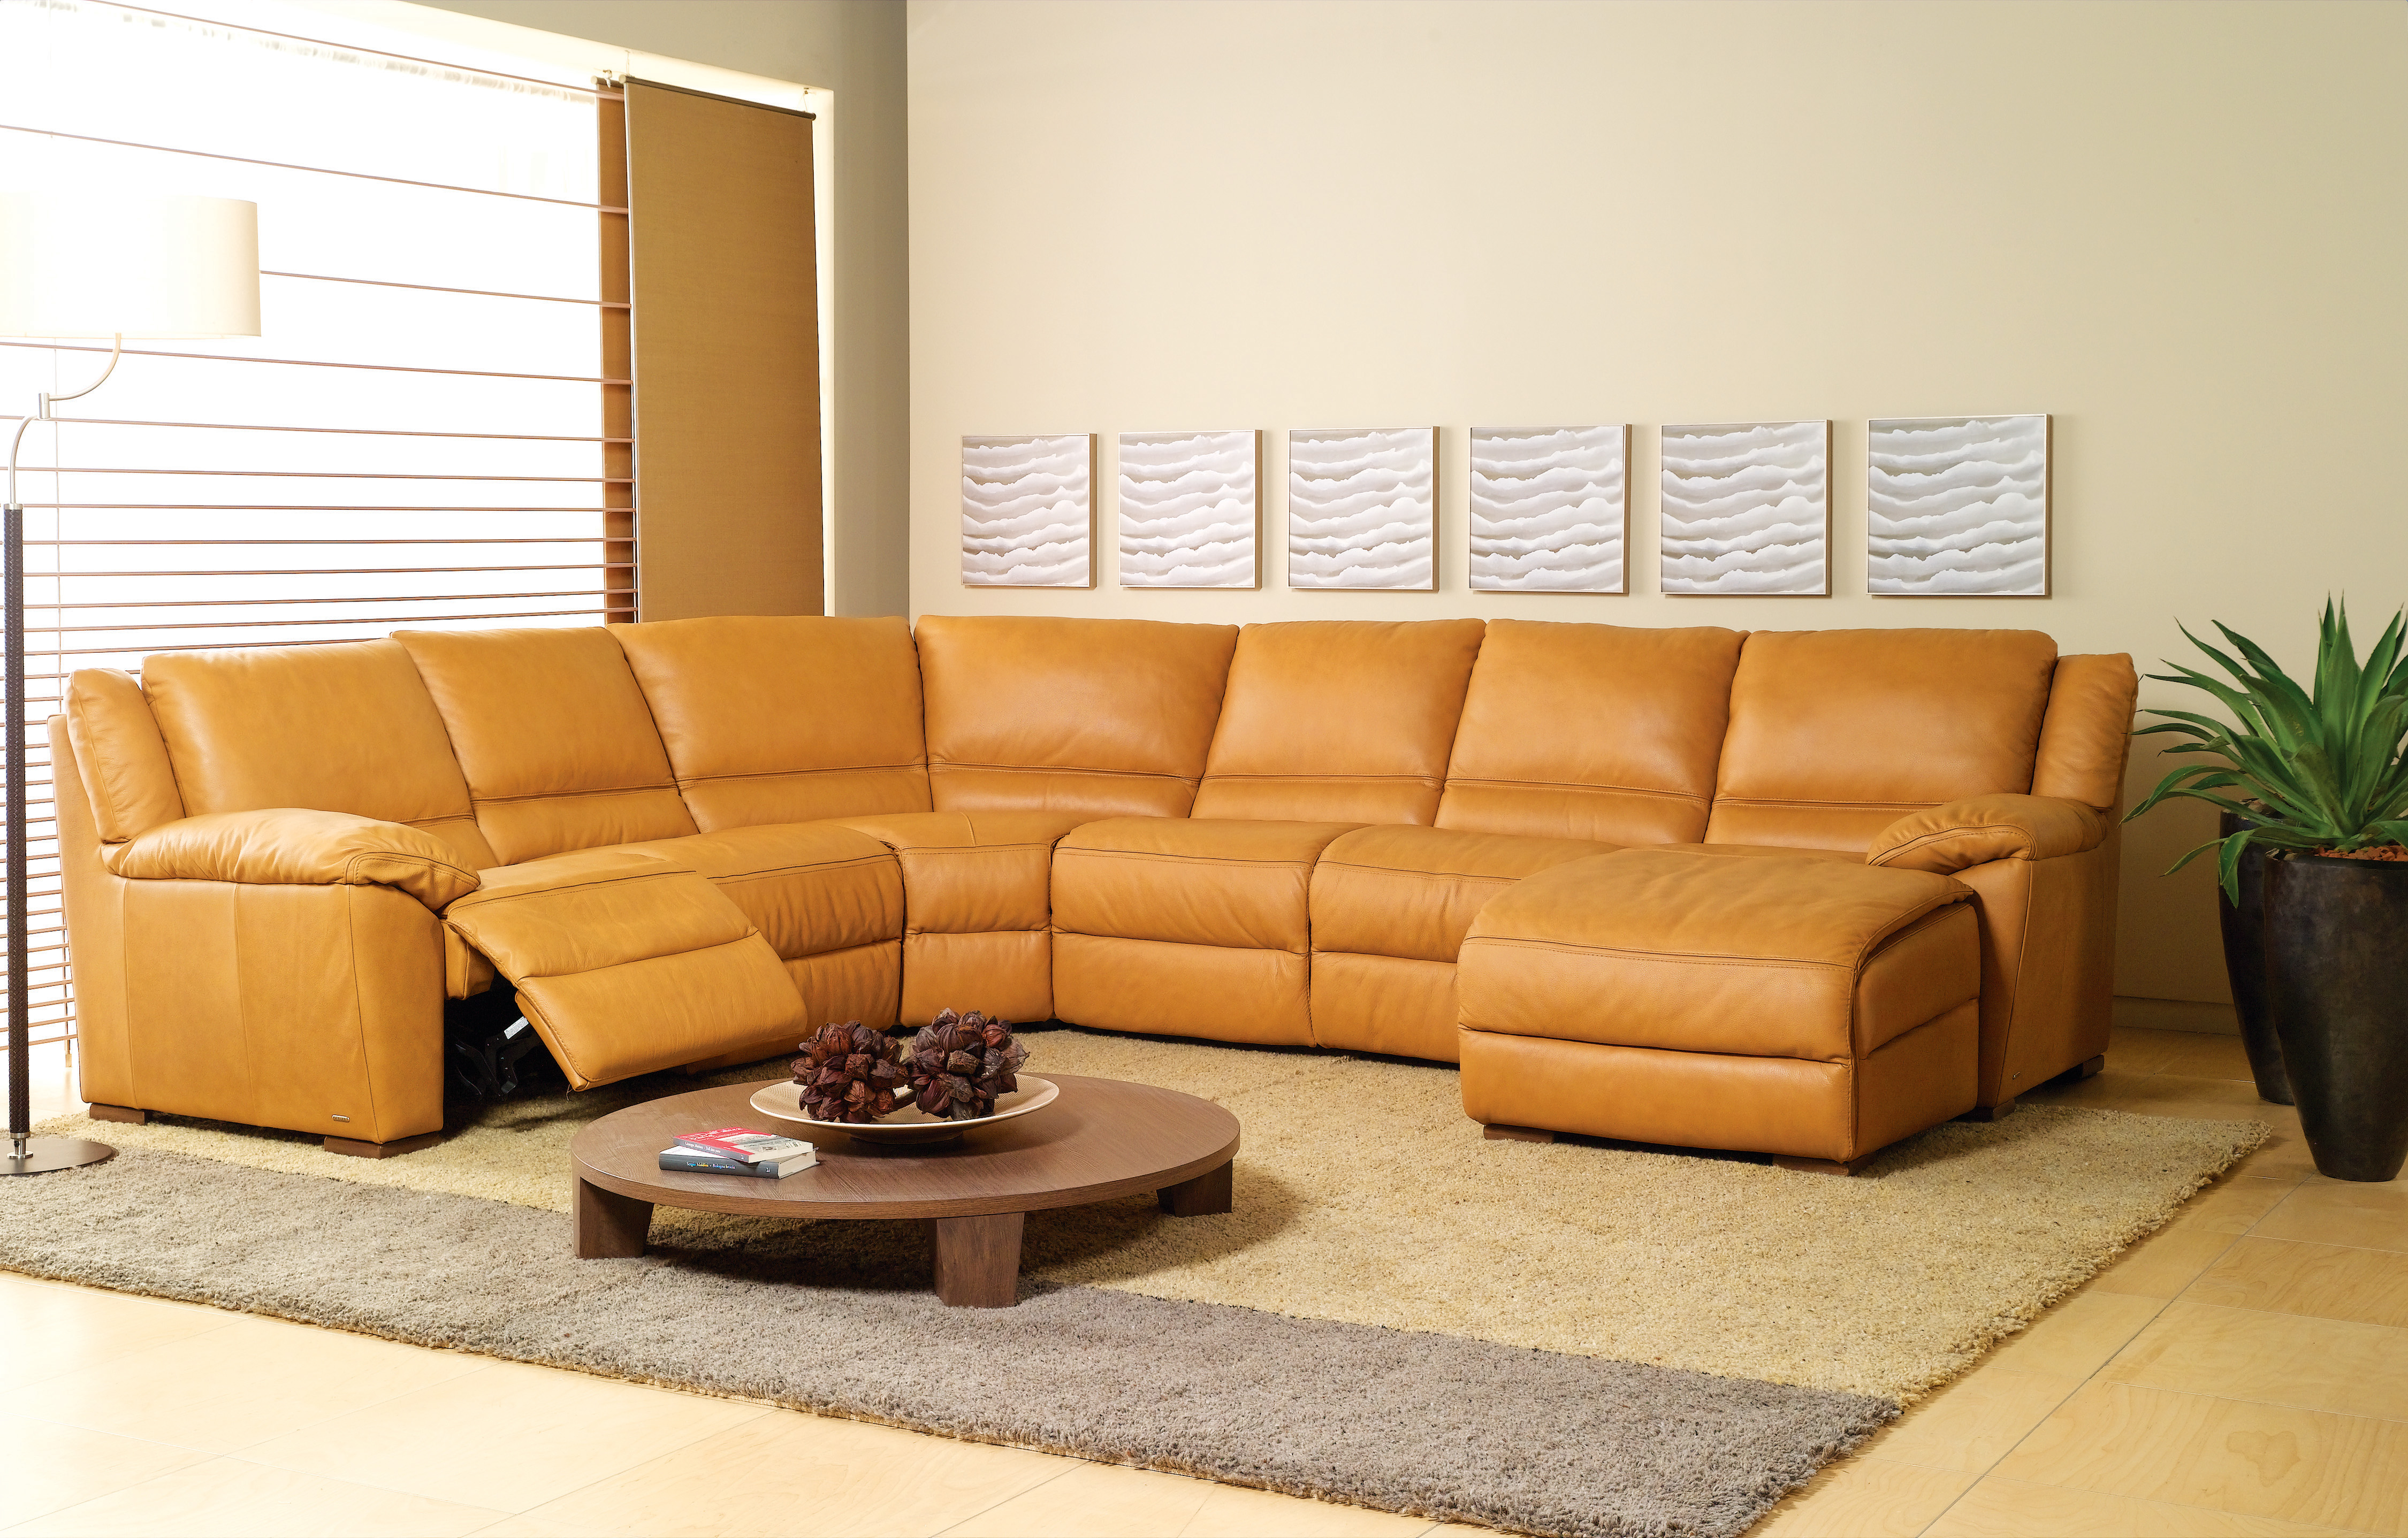 Natuzzi editions is the largest furniture house in italy with twelve manufacturing plants. Natuzzi Editions Giuseppe Sectional Sofa | NTZA319292076283049